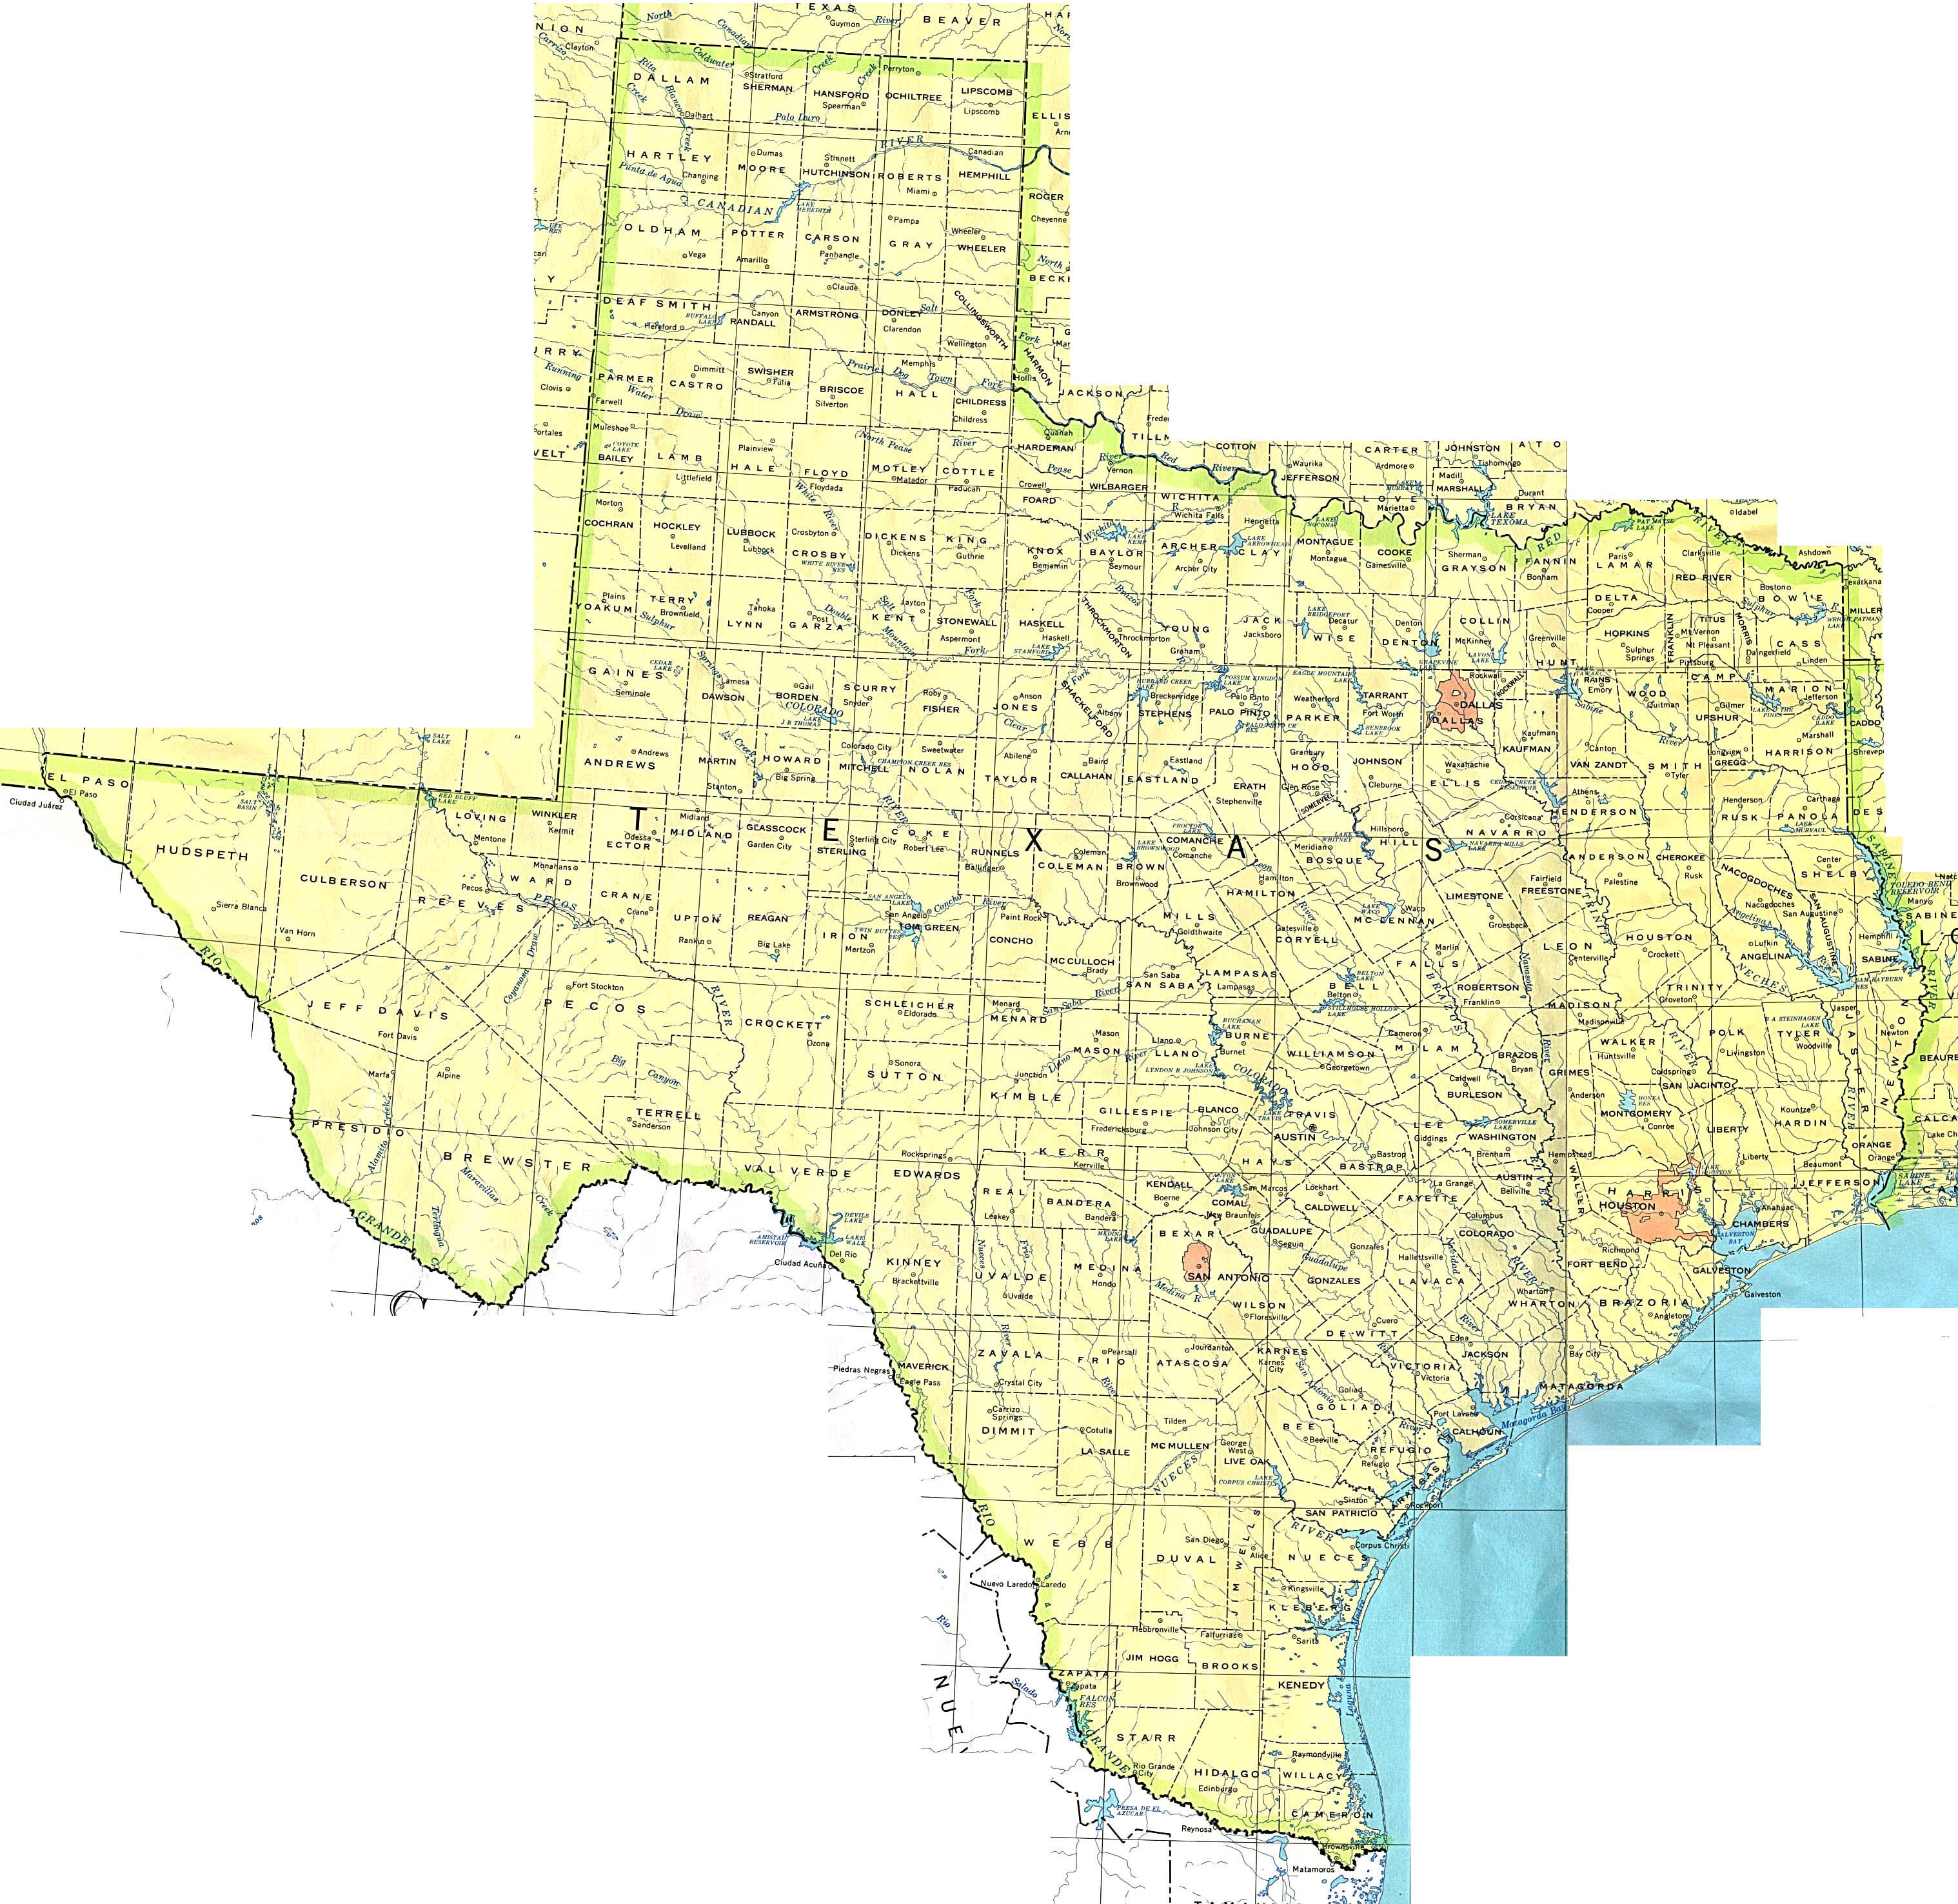 Detailed map of Texas state The state of Texas detailed map